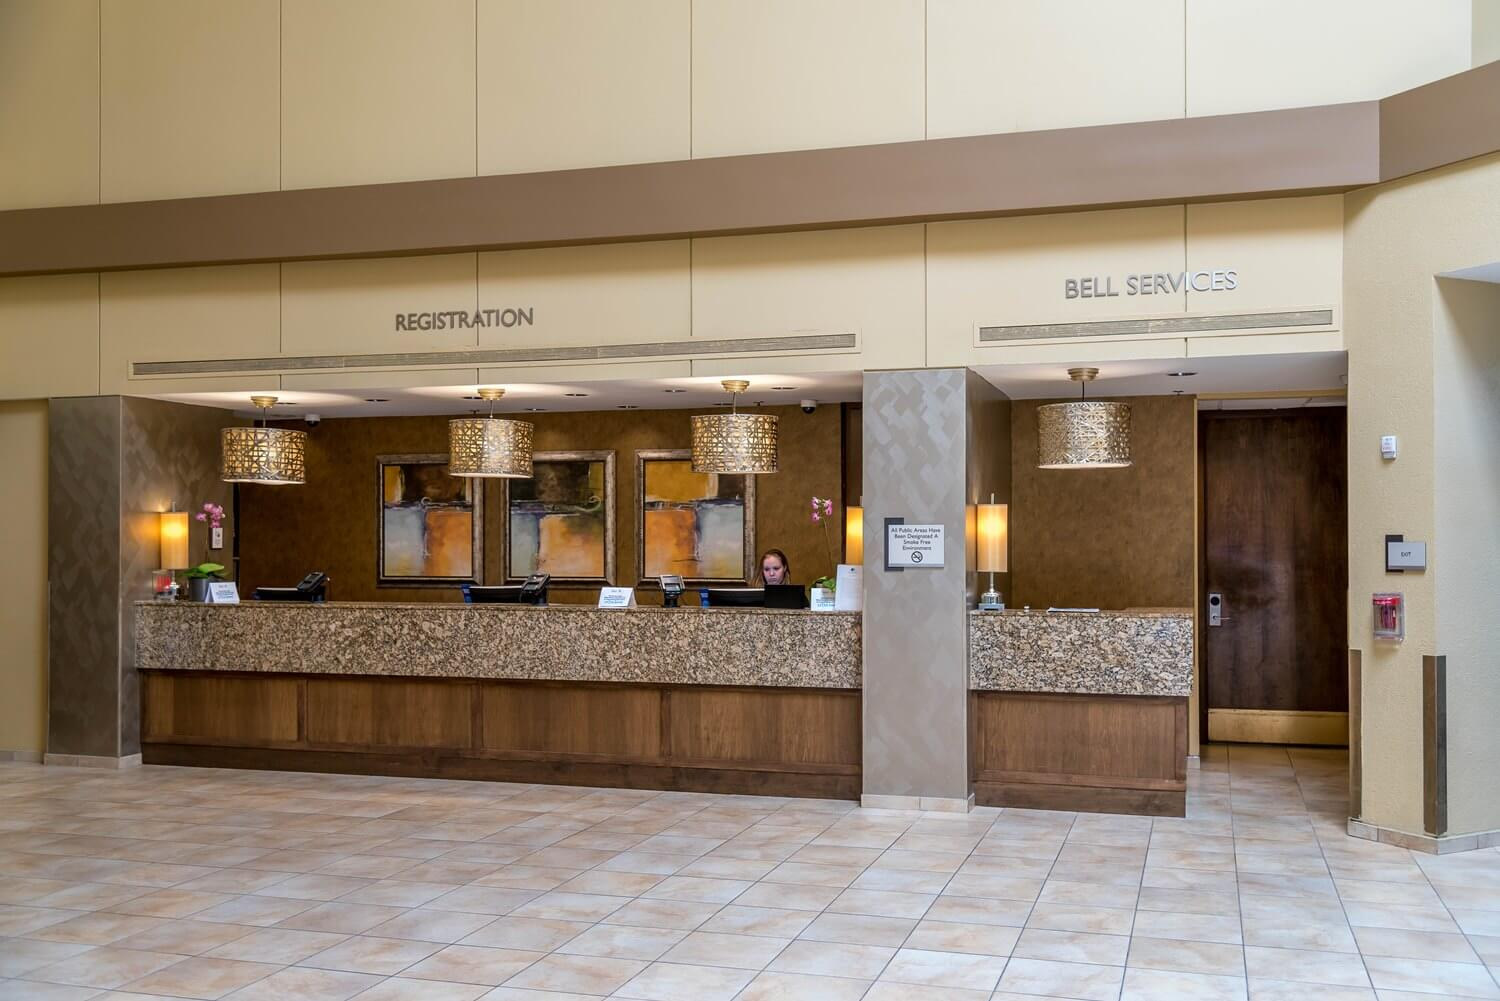 Check In and Bell Services at DoubleTree Suites by Hilton Orlando - Disney Springs Resort Area